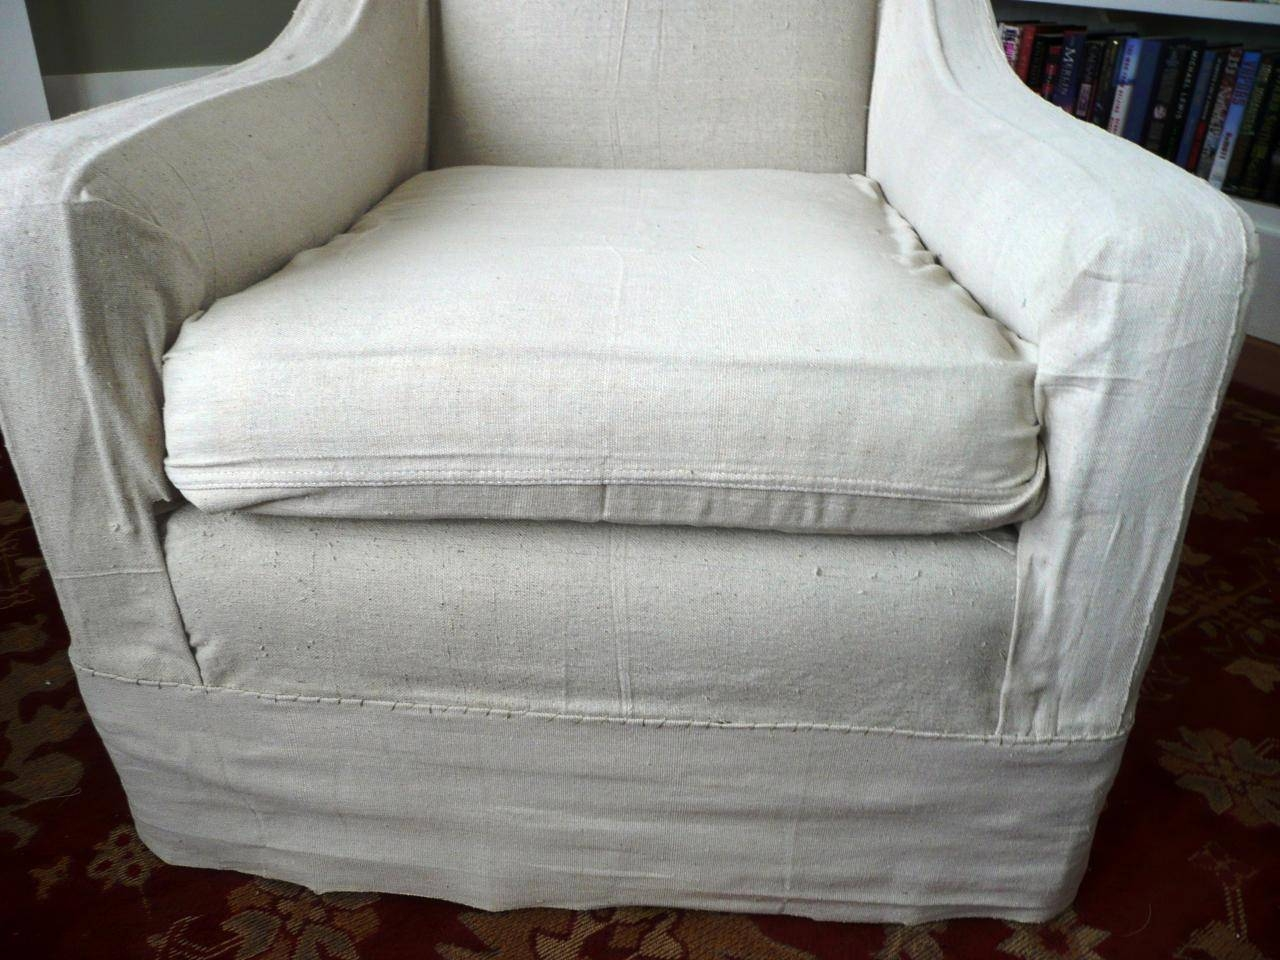 How To Make Arm Chair Slipcovers For Less Than $30 | How-Tos | Diy with regard to Slipcovers For Chairs And Sofas (Image 10 of 15)